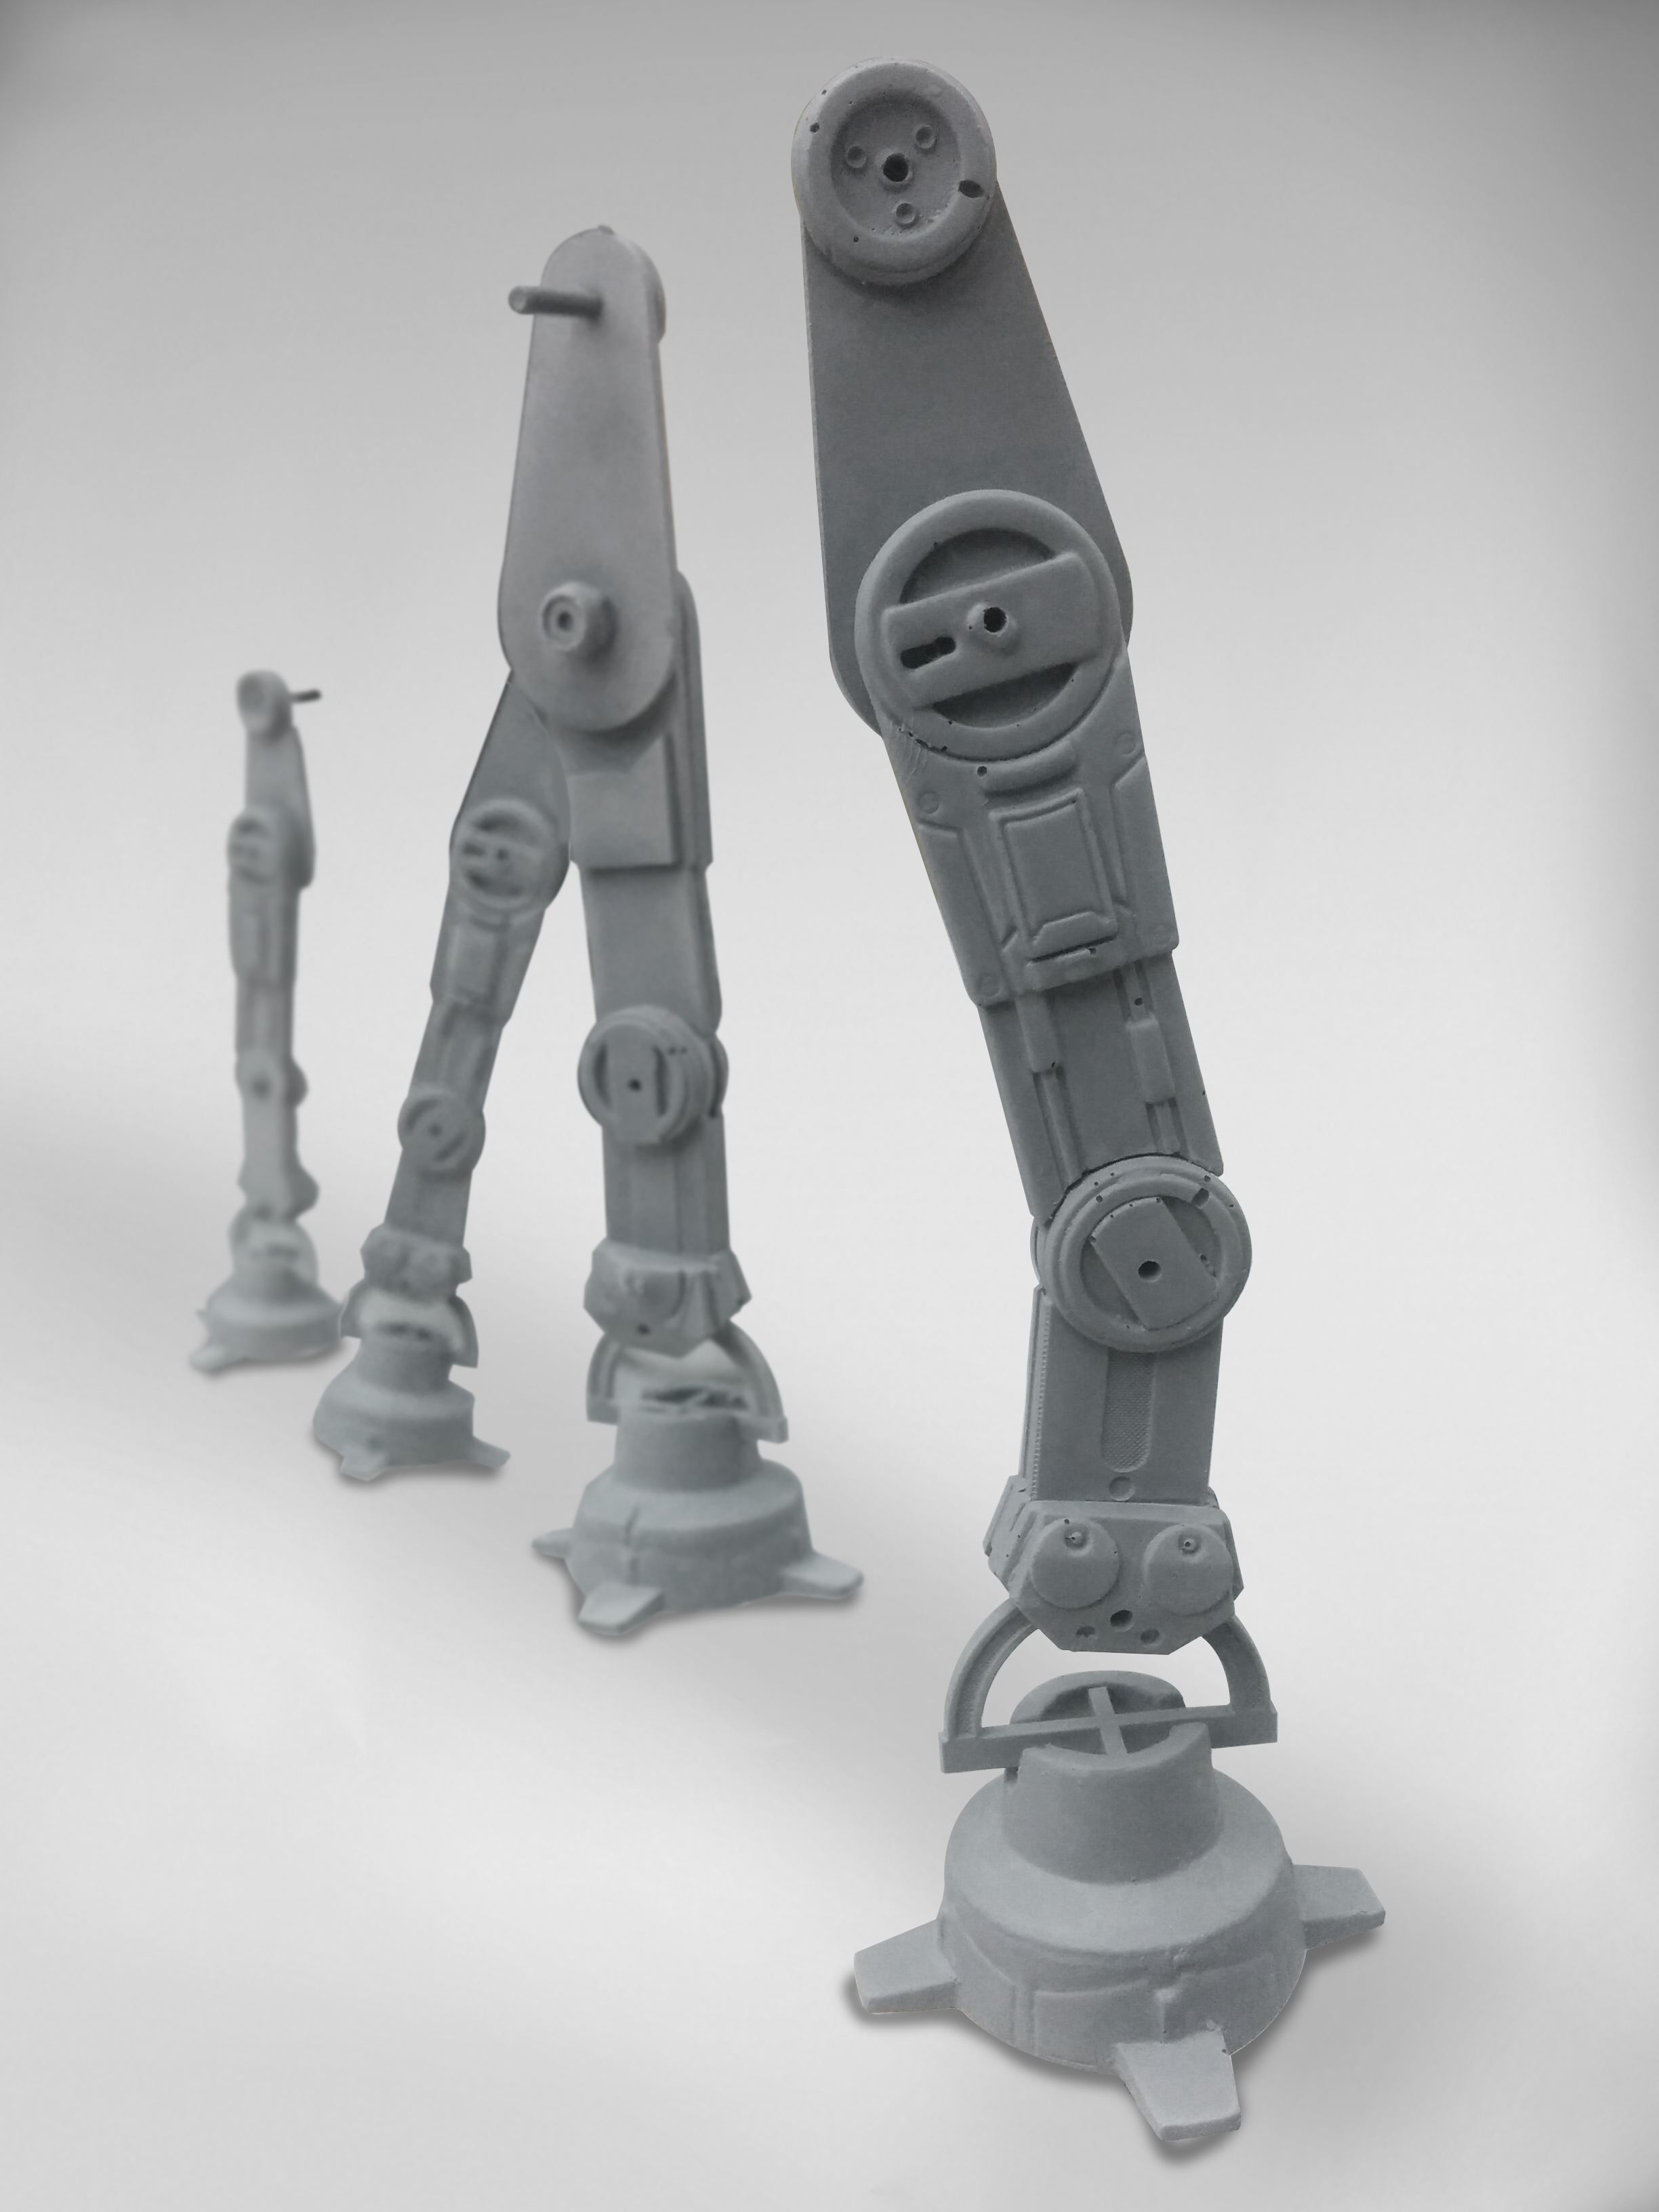 AT-AT legs assembled and painted